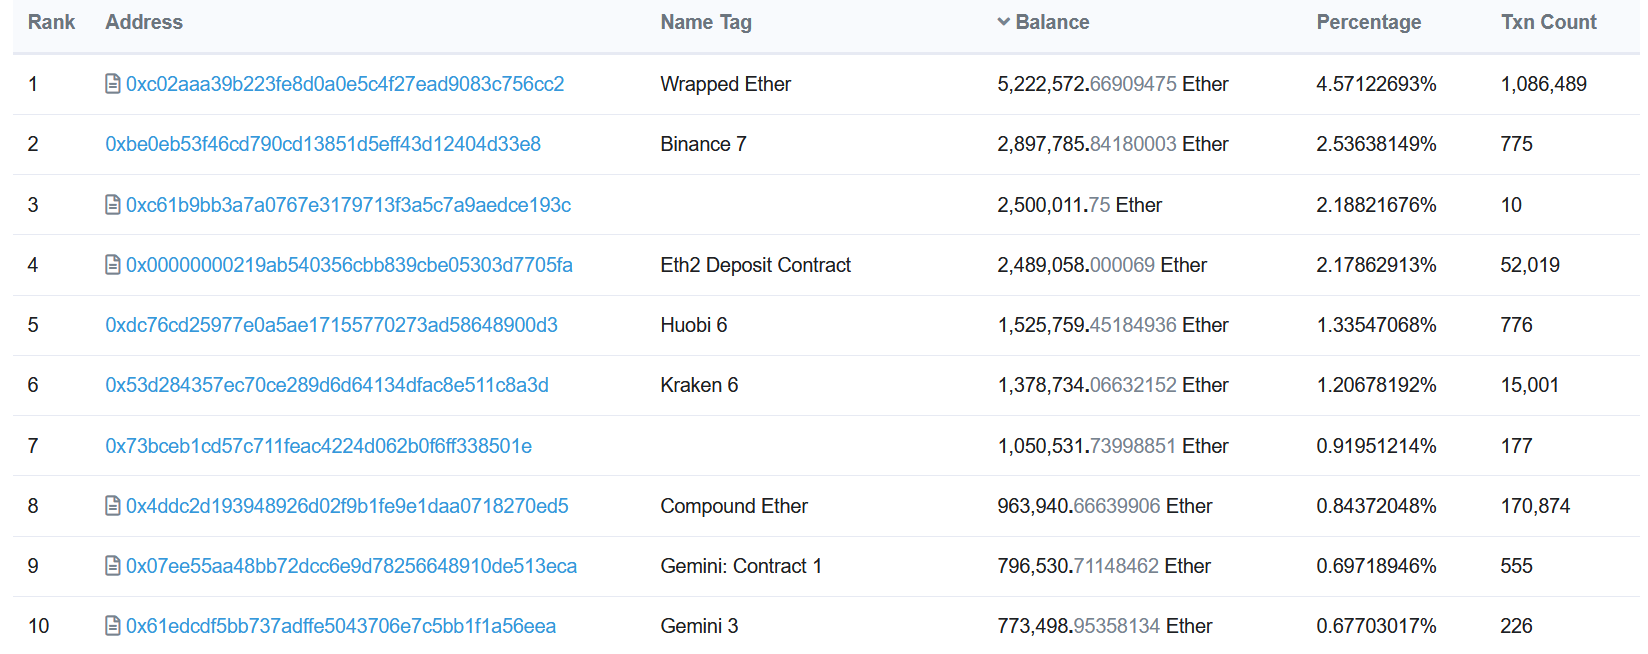 Gnosis receives $2.3B Ethereum in a day, now third largest ETH holder with 2.2% of provide